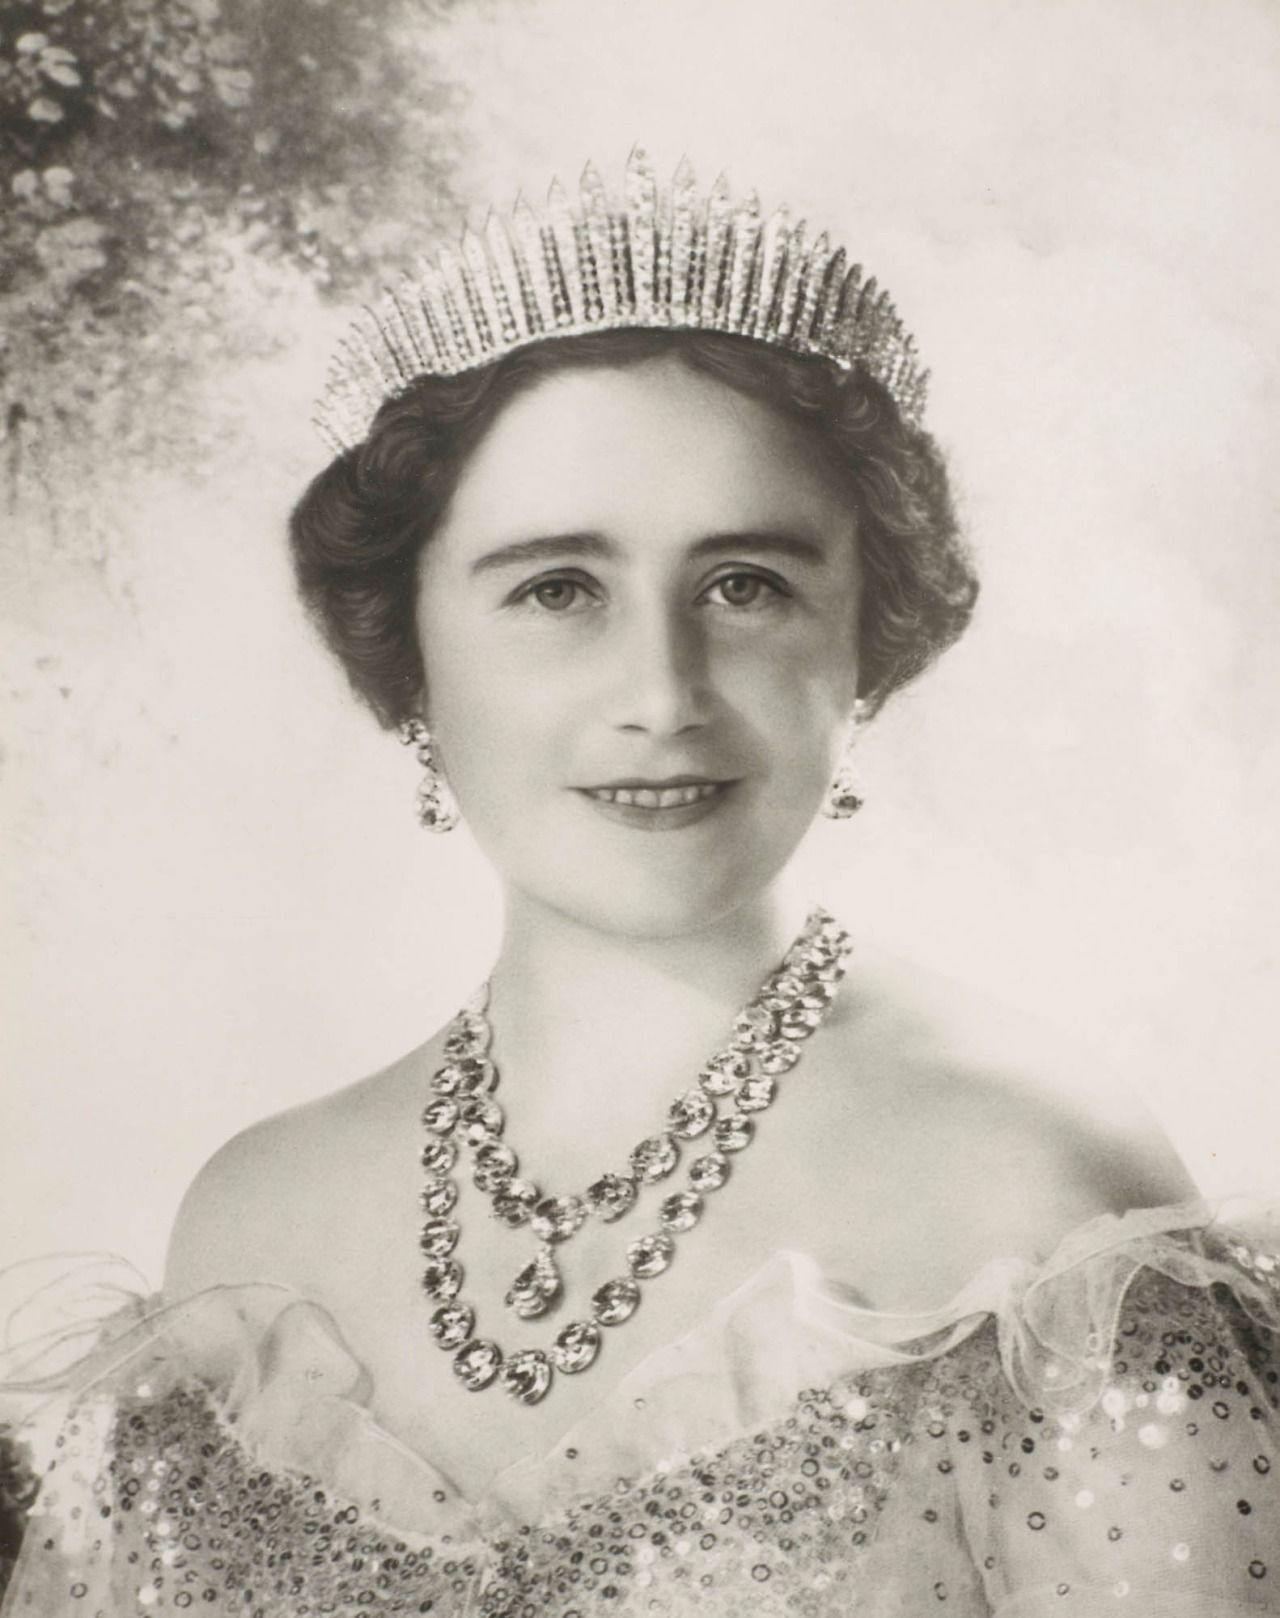 Queen Elizabeth of the United Kingdom wearing a Norman